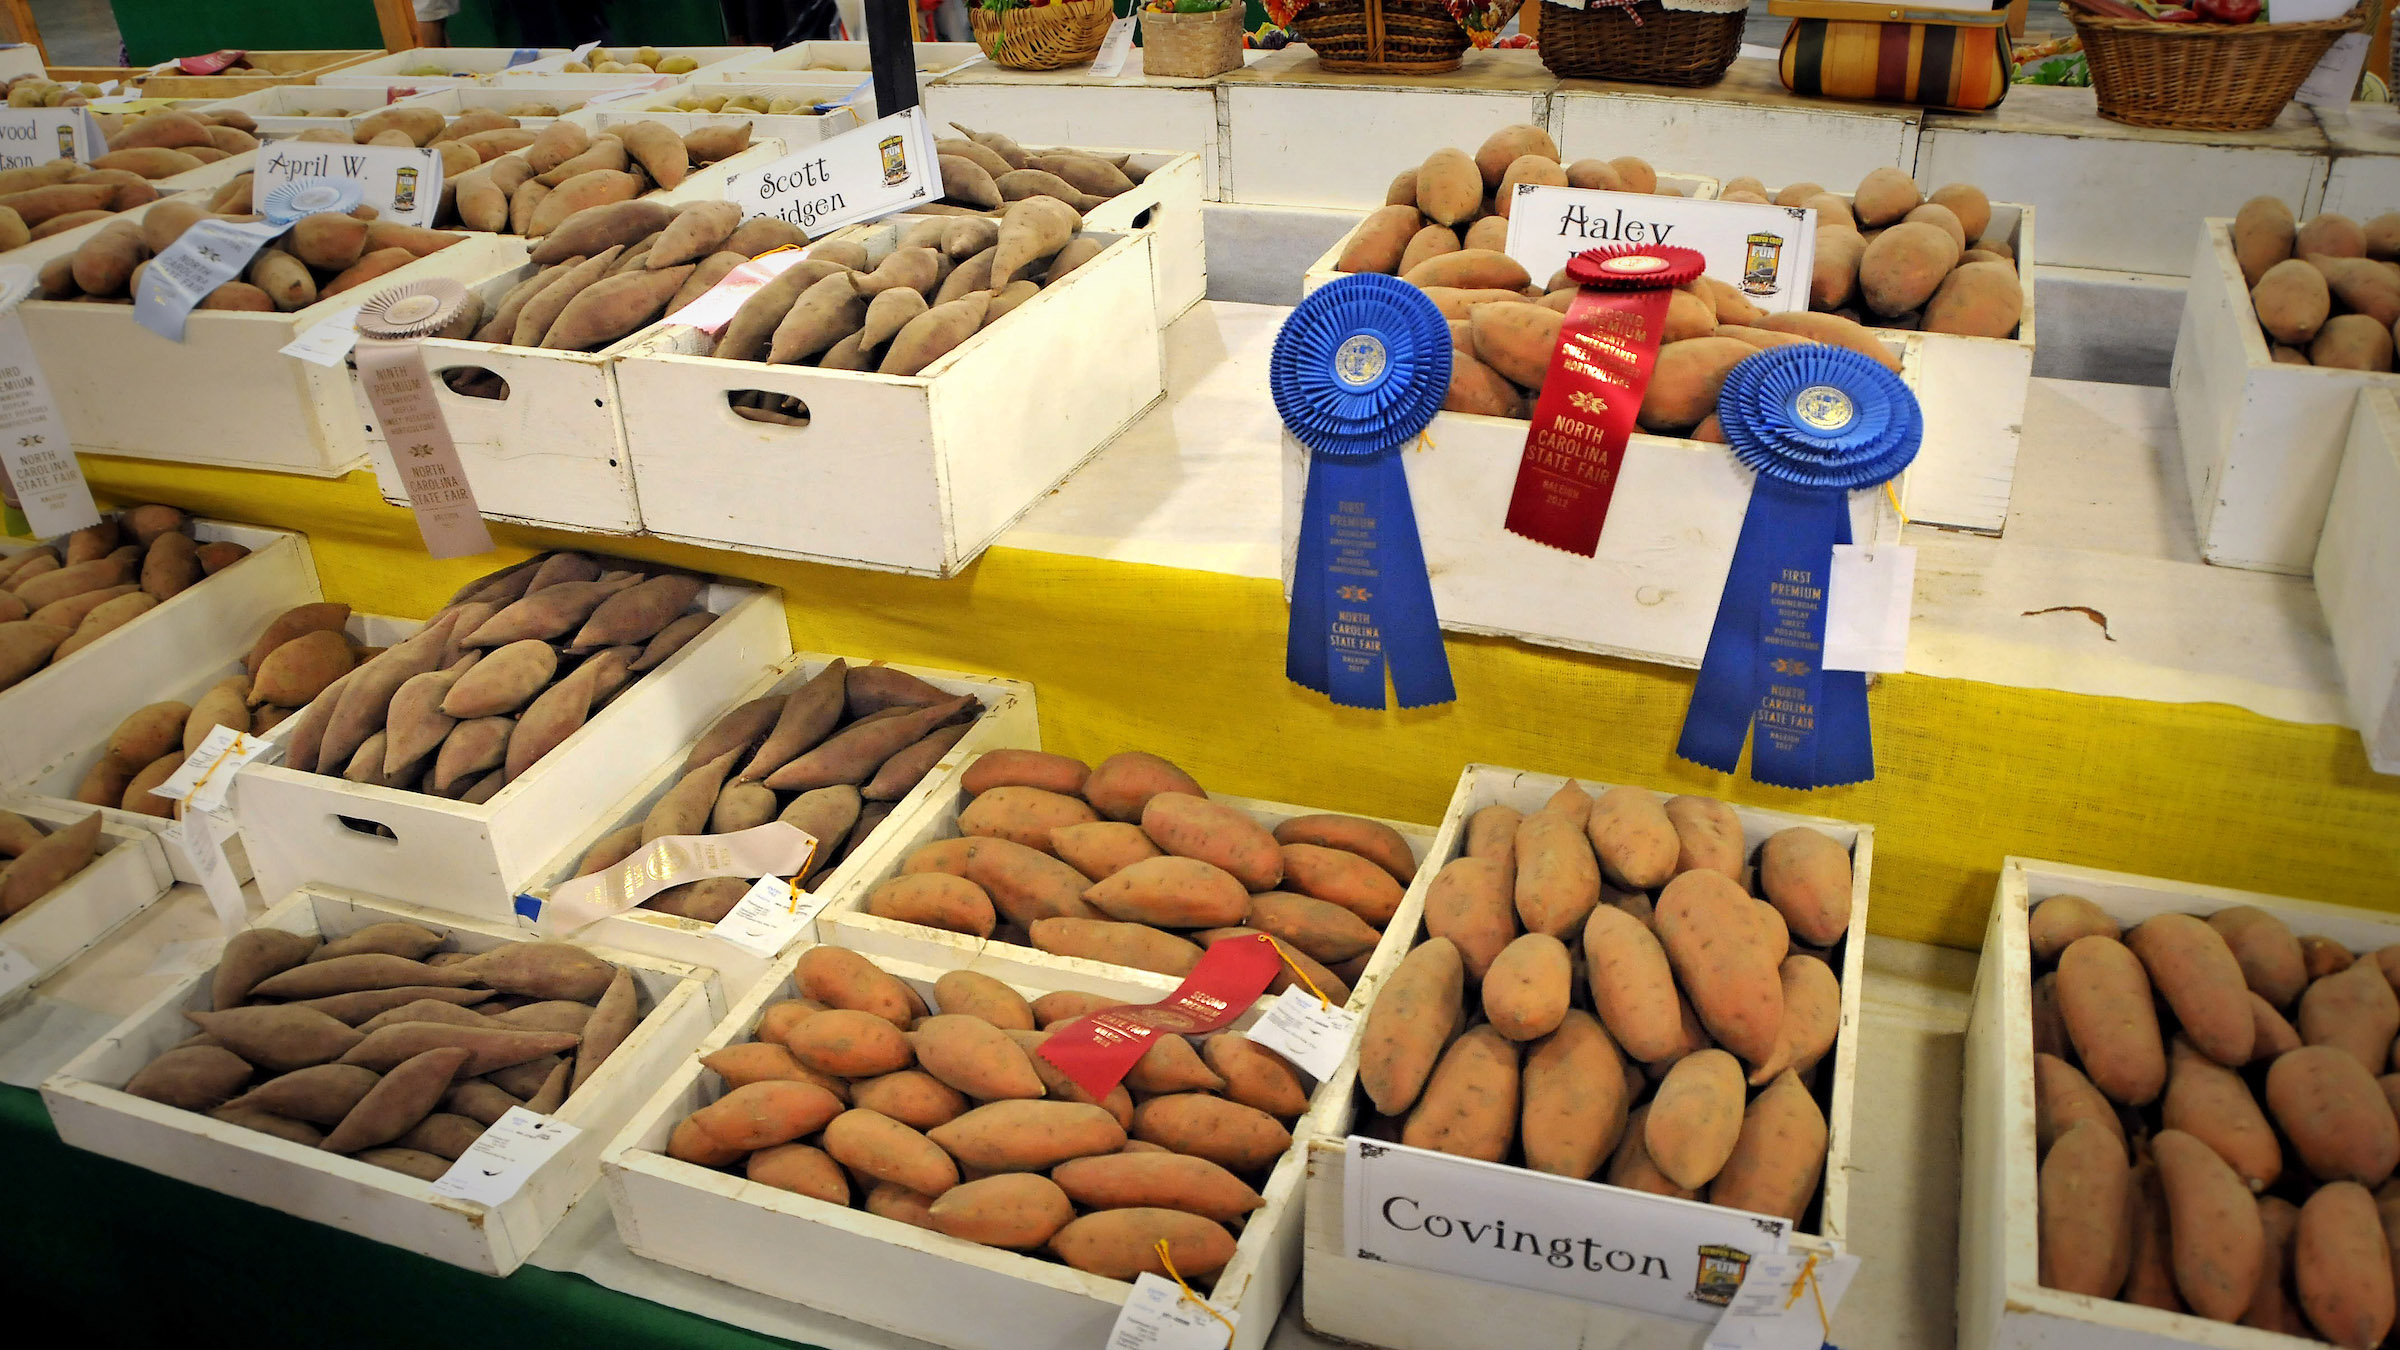 Sweet potato winners with blue ribbons at the N.C. State Fair